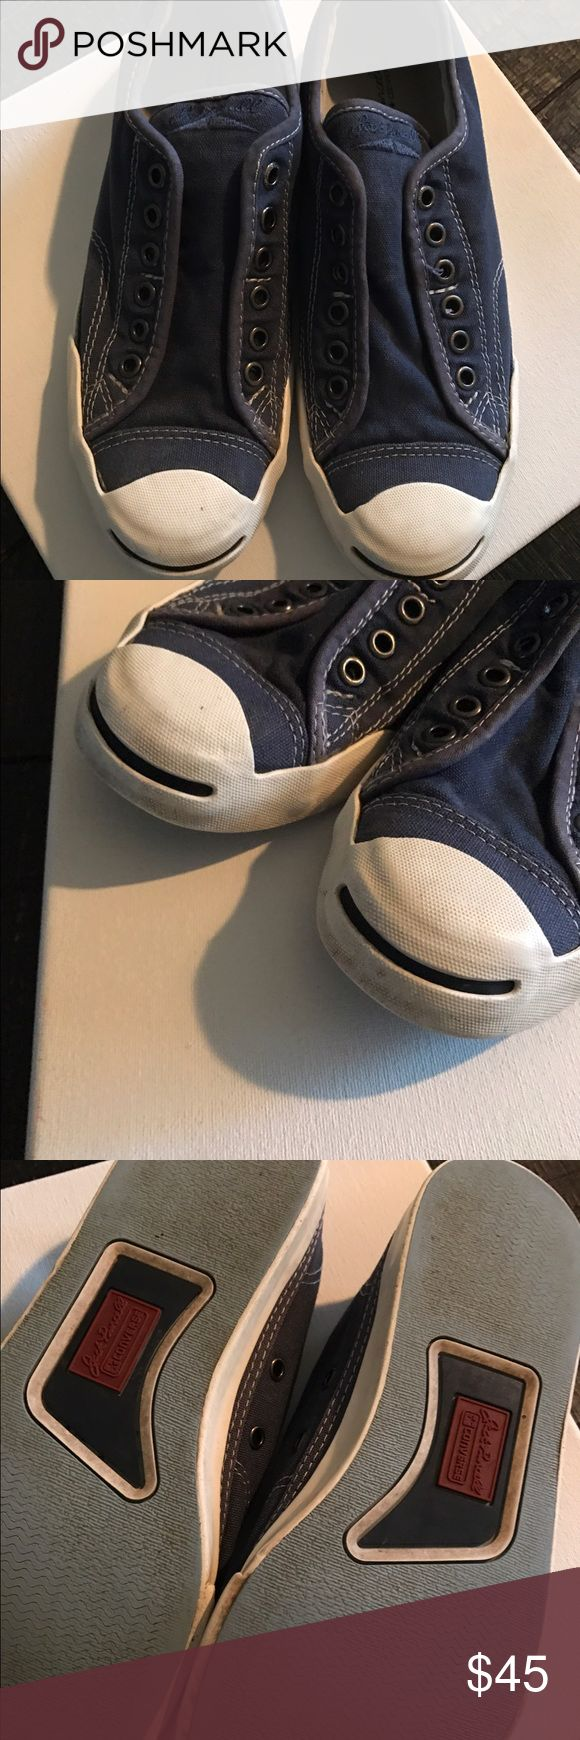 Jack Purcell Converse Classics The perfect shoe! These Jack Purcell classic no lace converse shoes are a hit. Comfortable wear with style. Make an offer 💰 or bundle with my other items and save 😀 Converse Shoes Sneakers